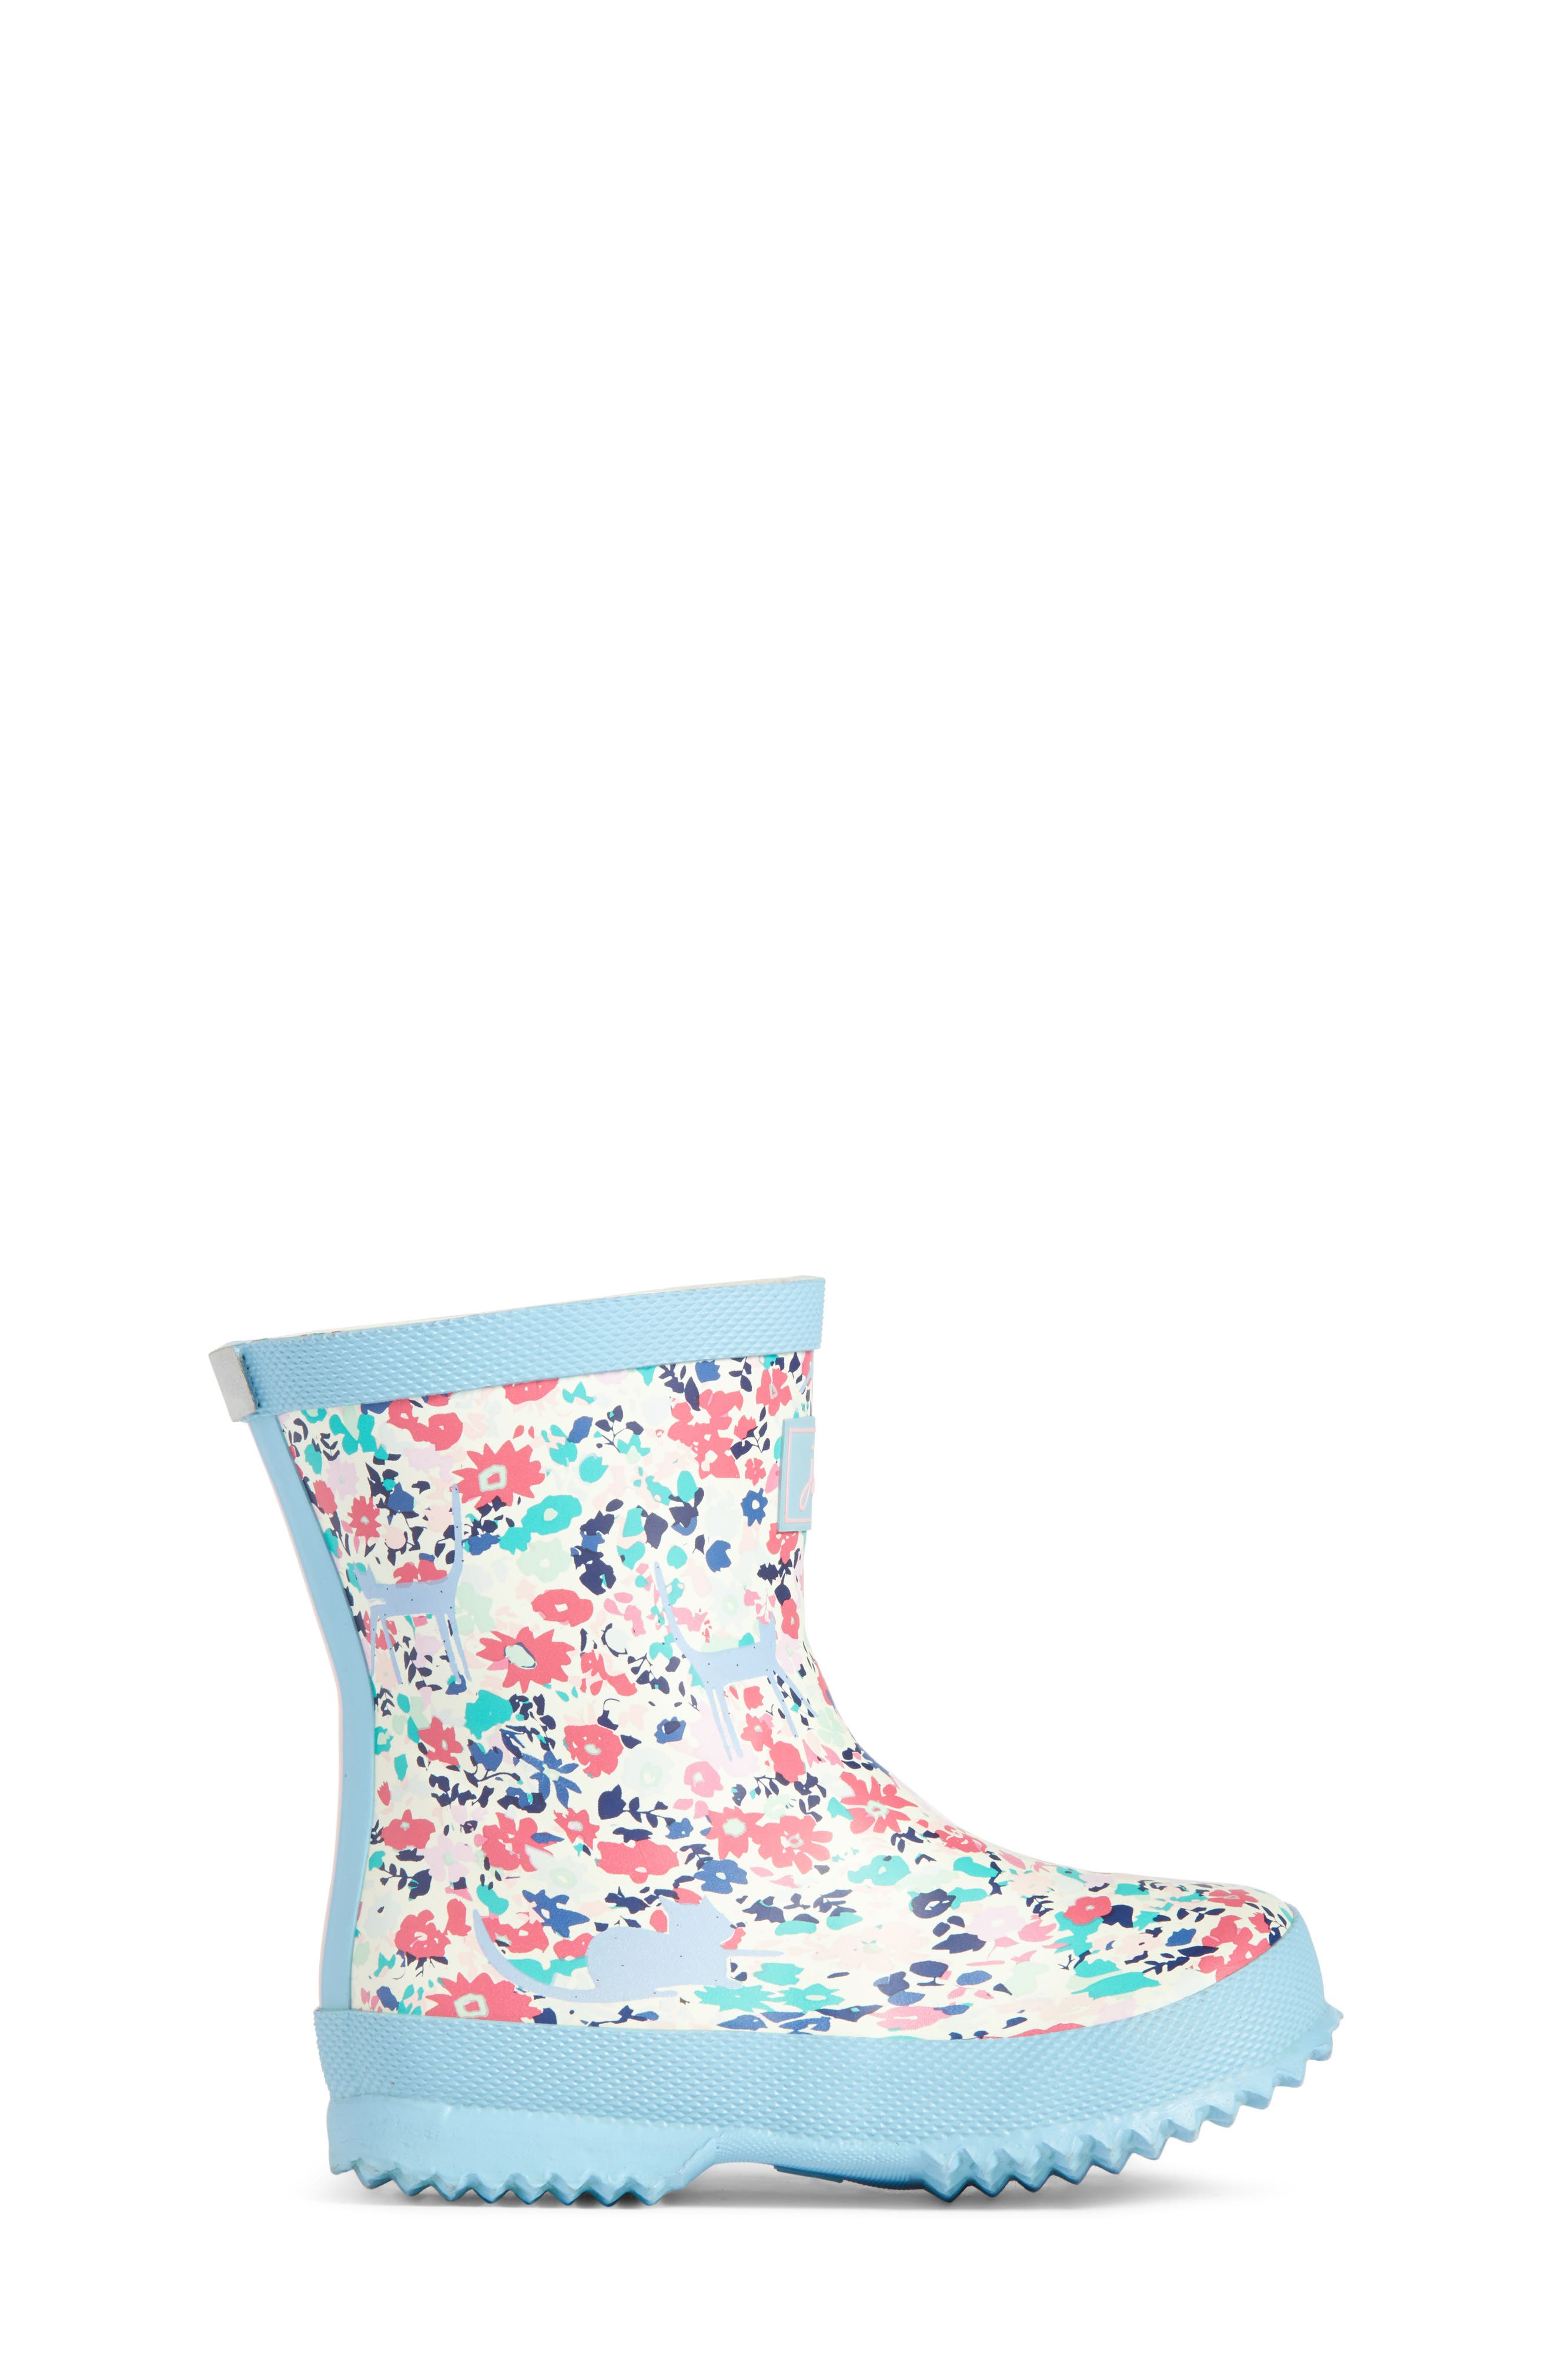 Baby Welly Print Waterproof Boot,                             Alternate thumbnail 3, color,                             Pretty Kitty Ditsy